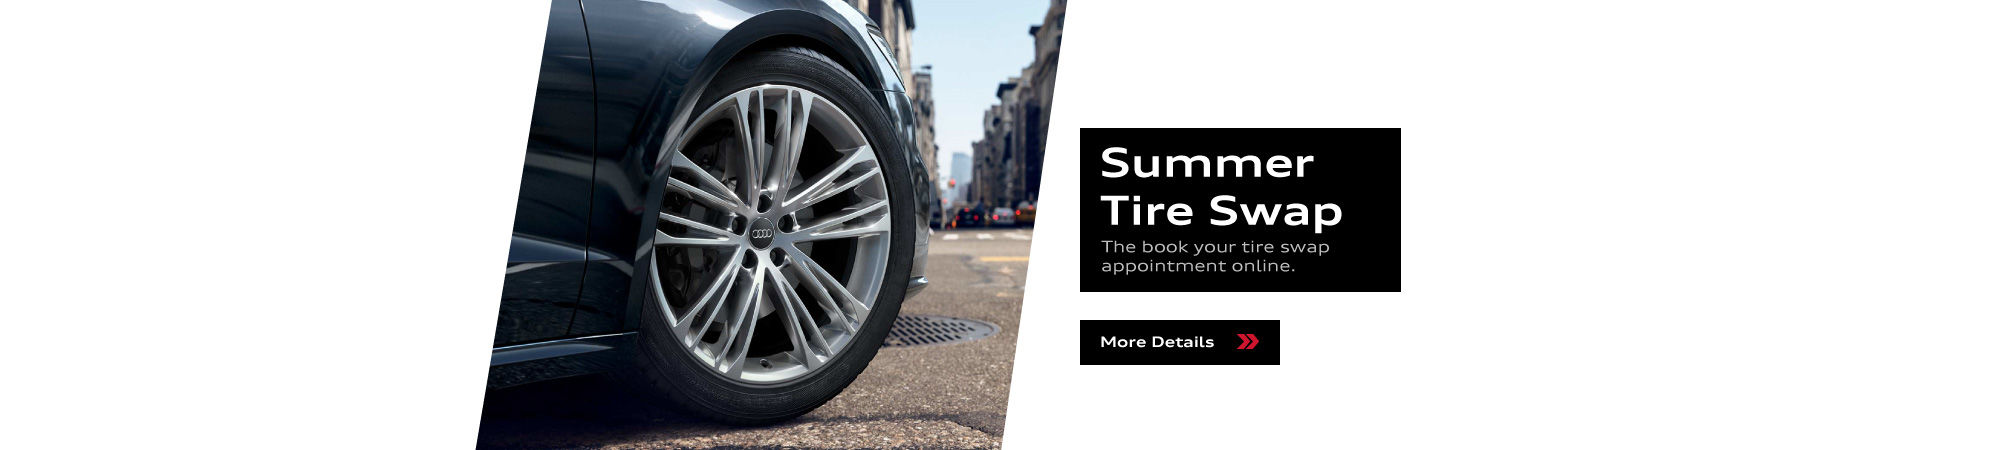 Book Your Summer Tire Swap Appointment Online